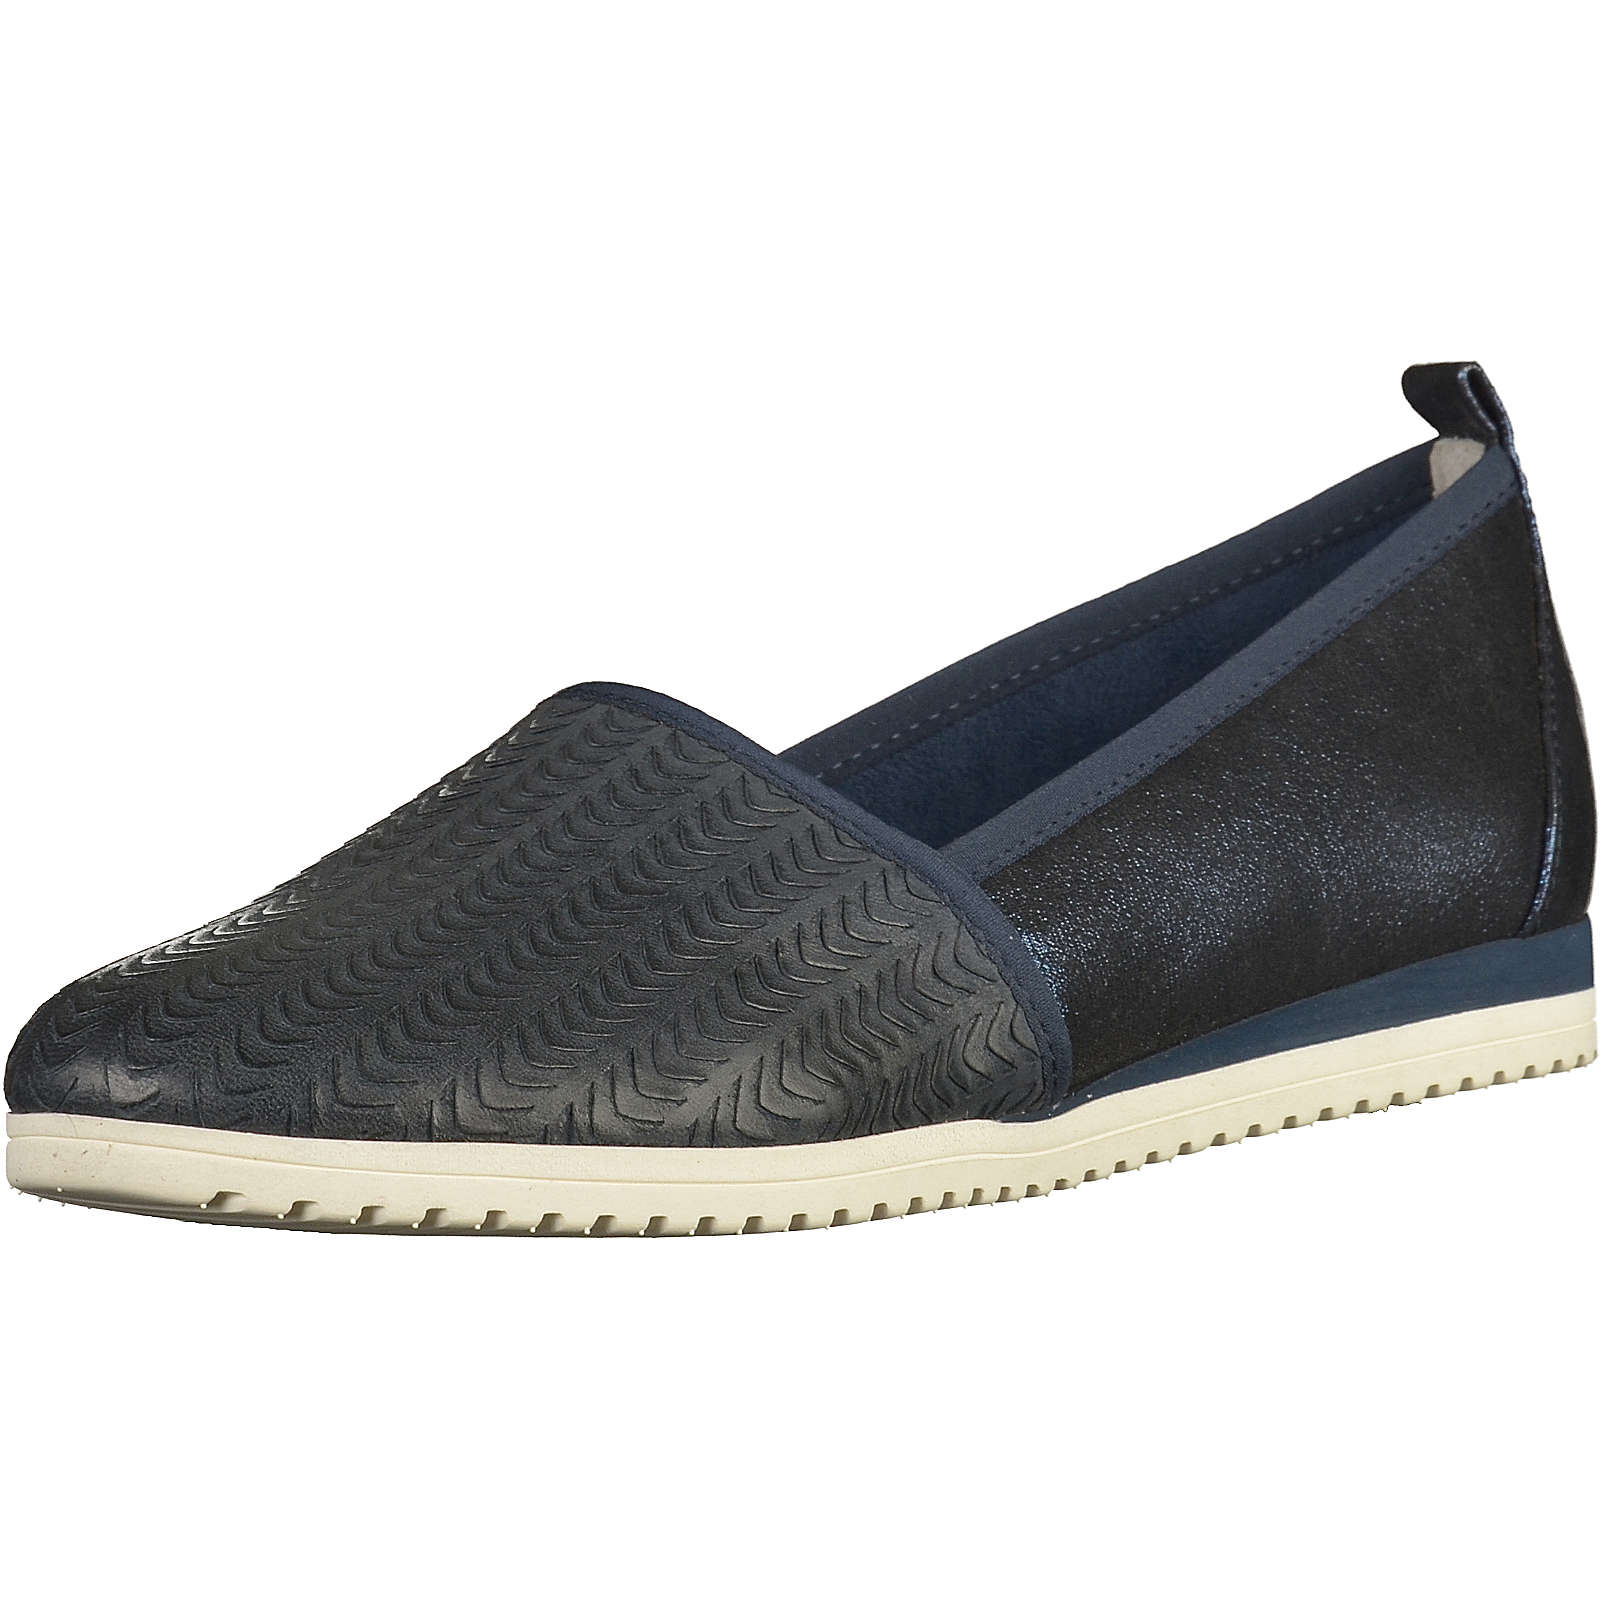 Tamaris Slipper dunkelblau Damen Gr. 36